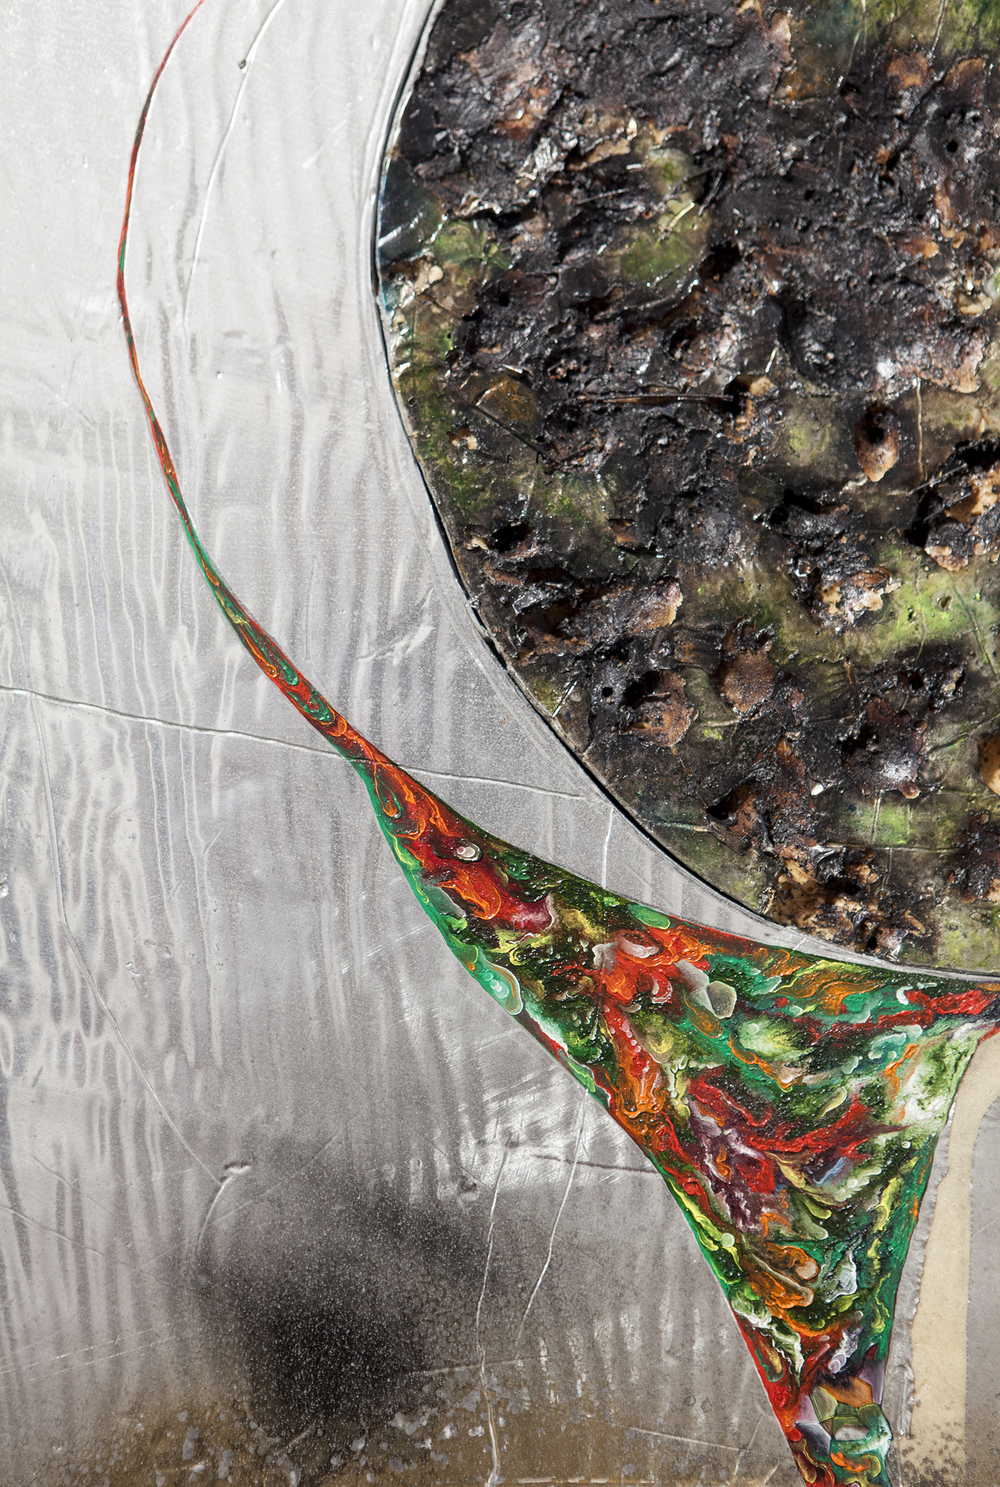 """That pour through your mouth O river of silver, O river of flowers"" (detail), 2015, oil paint, burns, steel on silver faced foam panel, 25,5x29,5 inches"